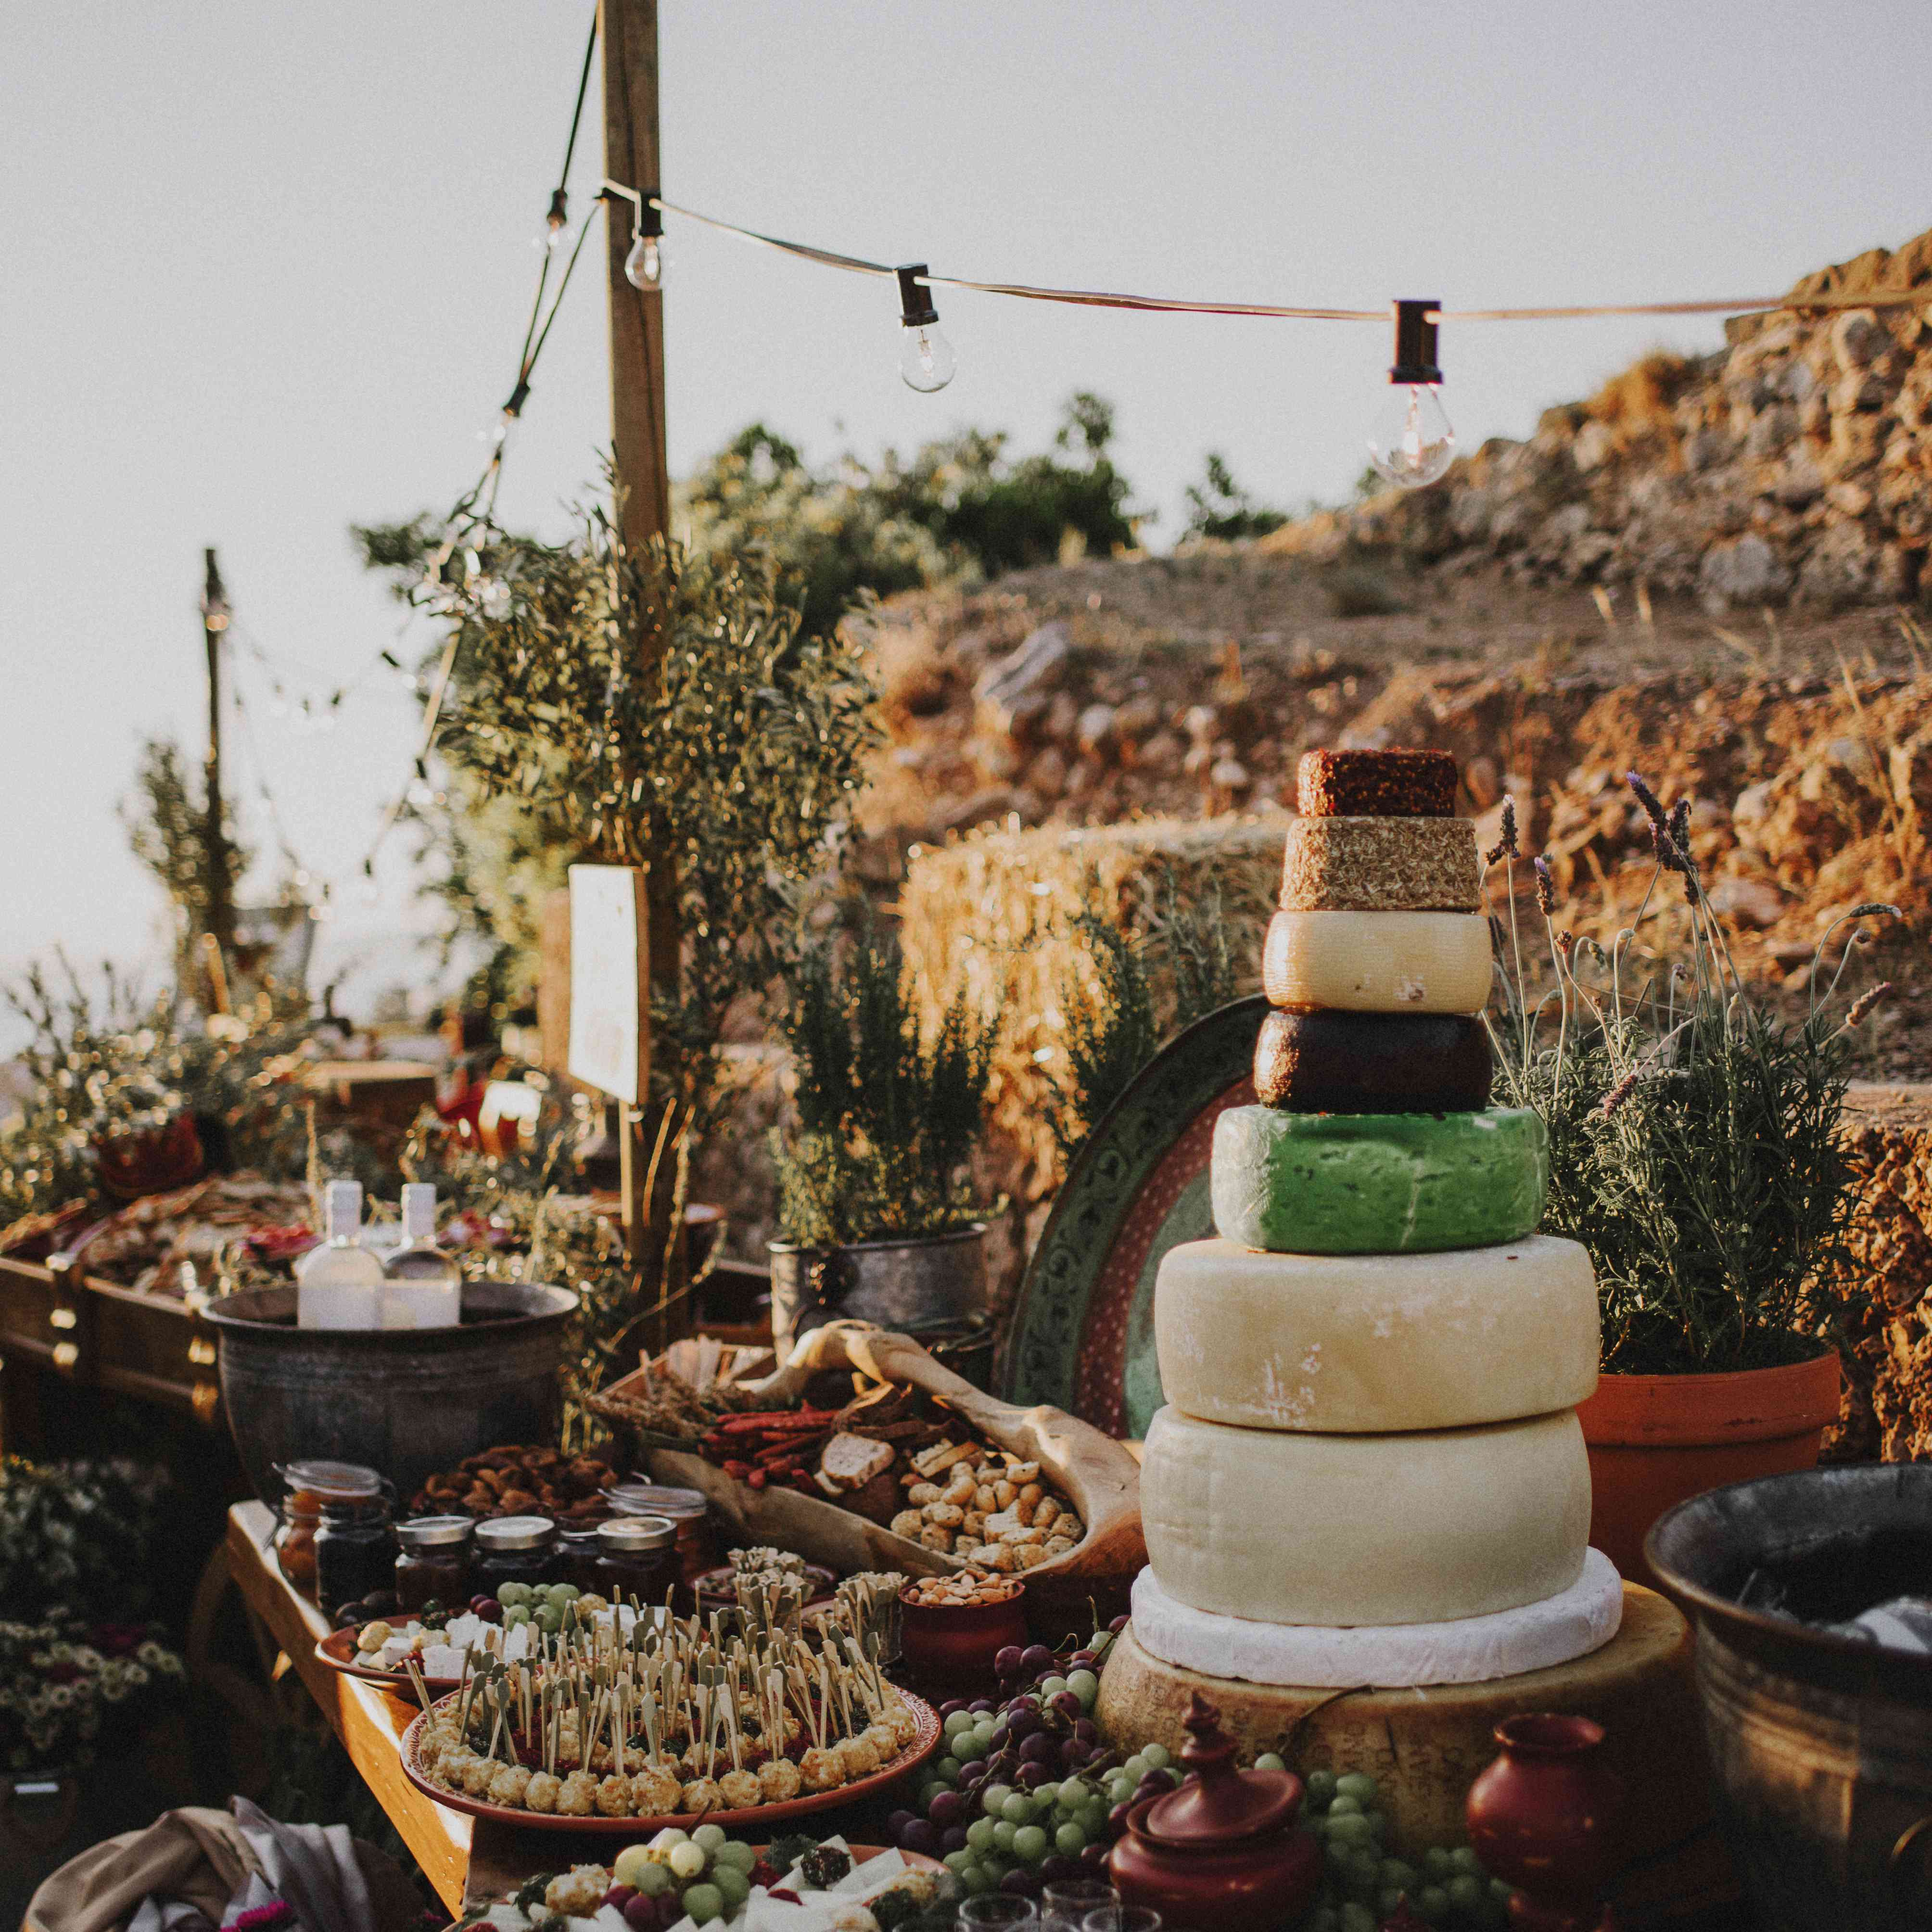 Petit Buffet Art Deco one couple's two over-the-top weddings in greece and lebanon